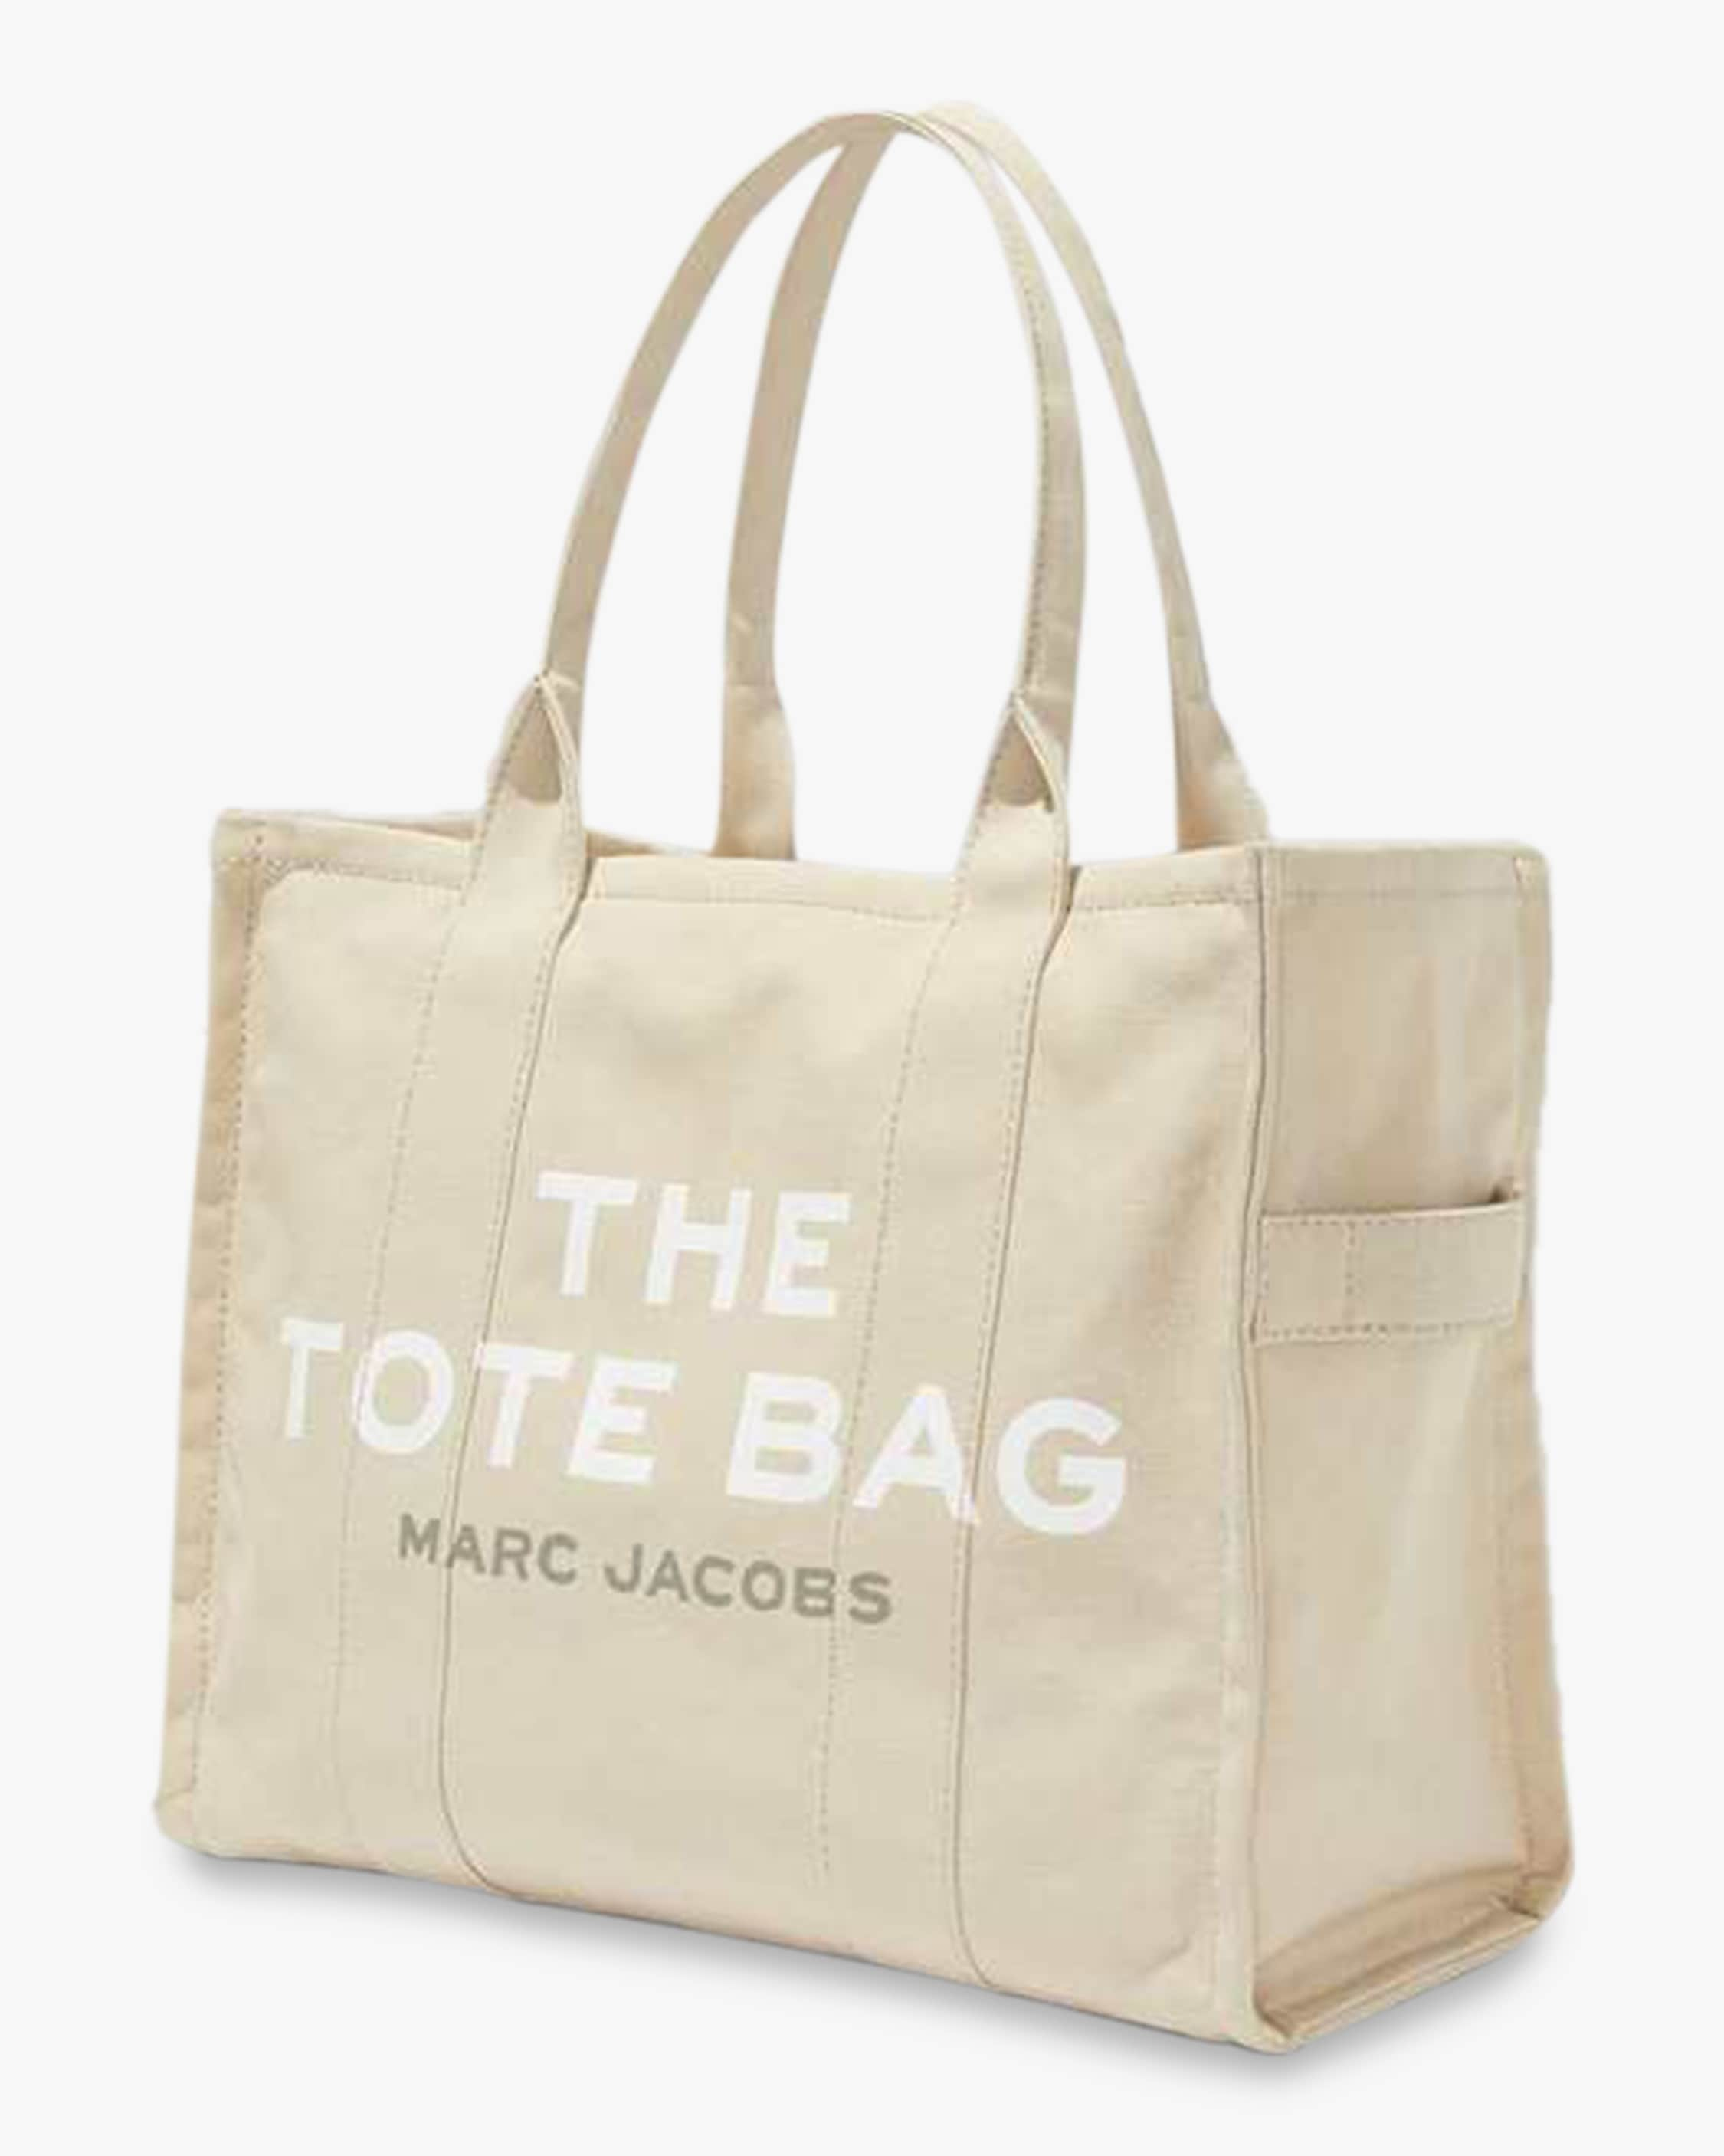 Marc Jacobs The Traveler Tote 2